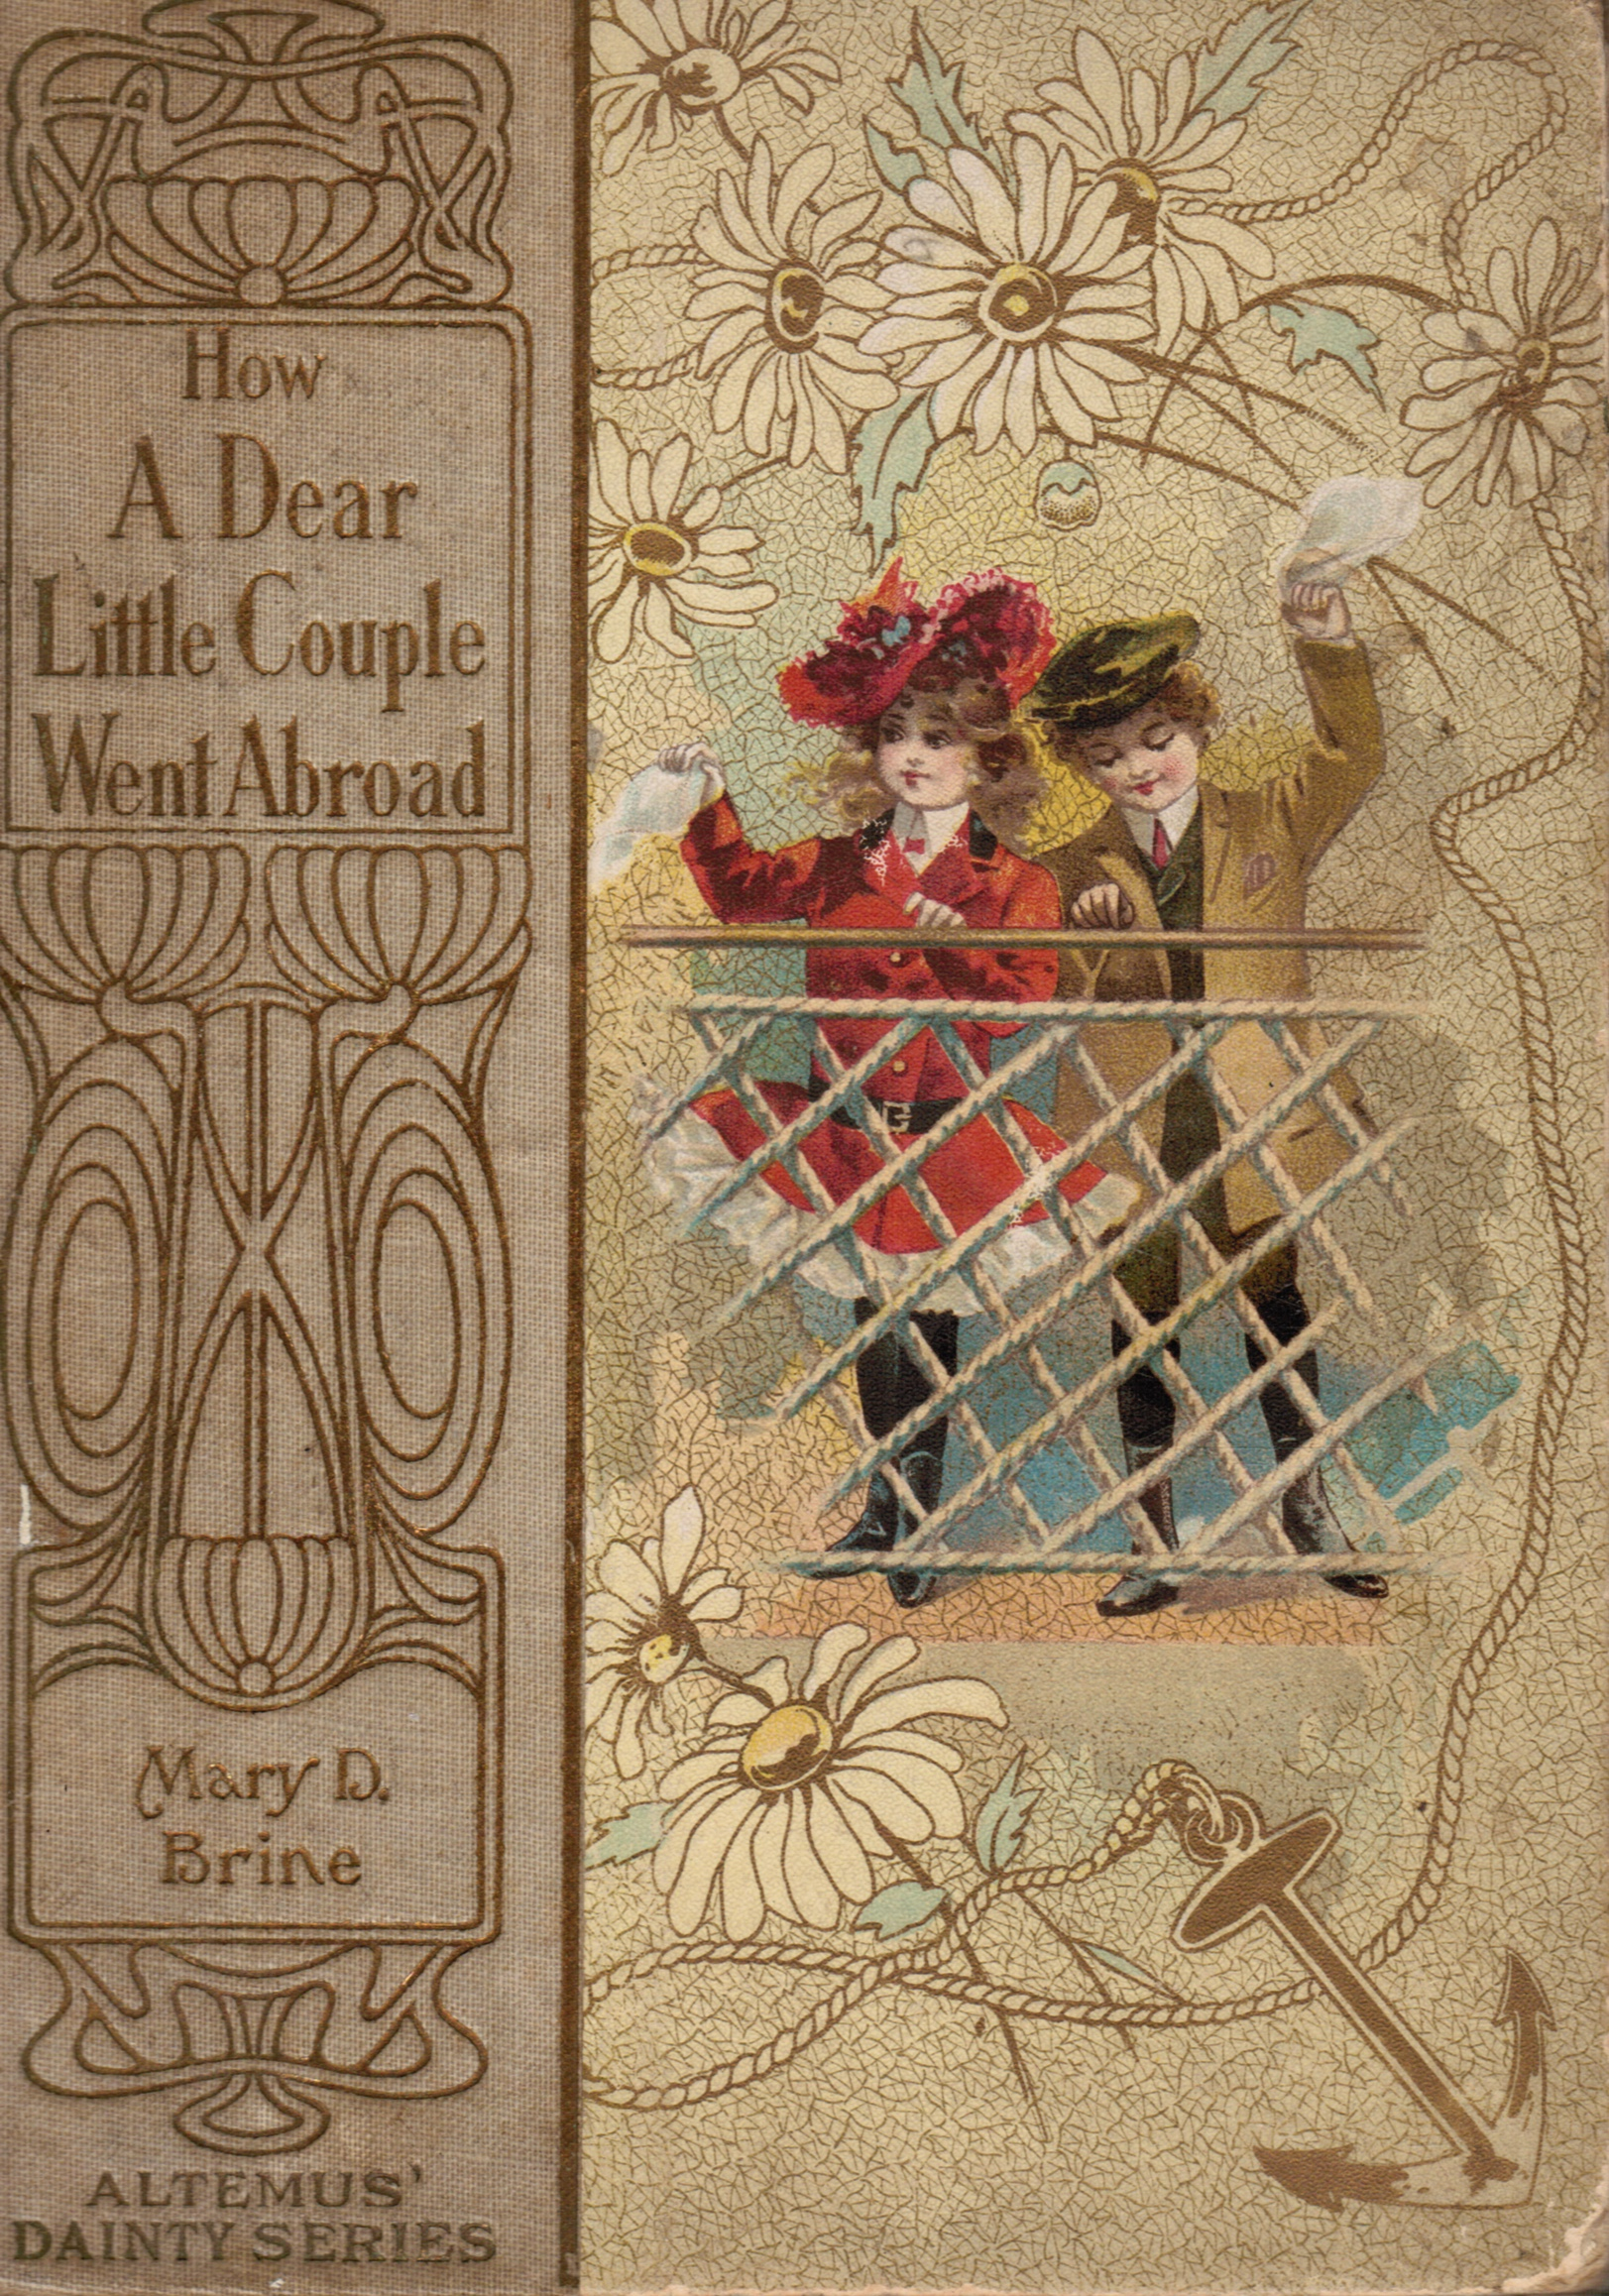 "Image for How ""A Dear Little Couple"" Went Abroad"